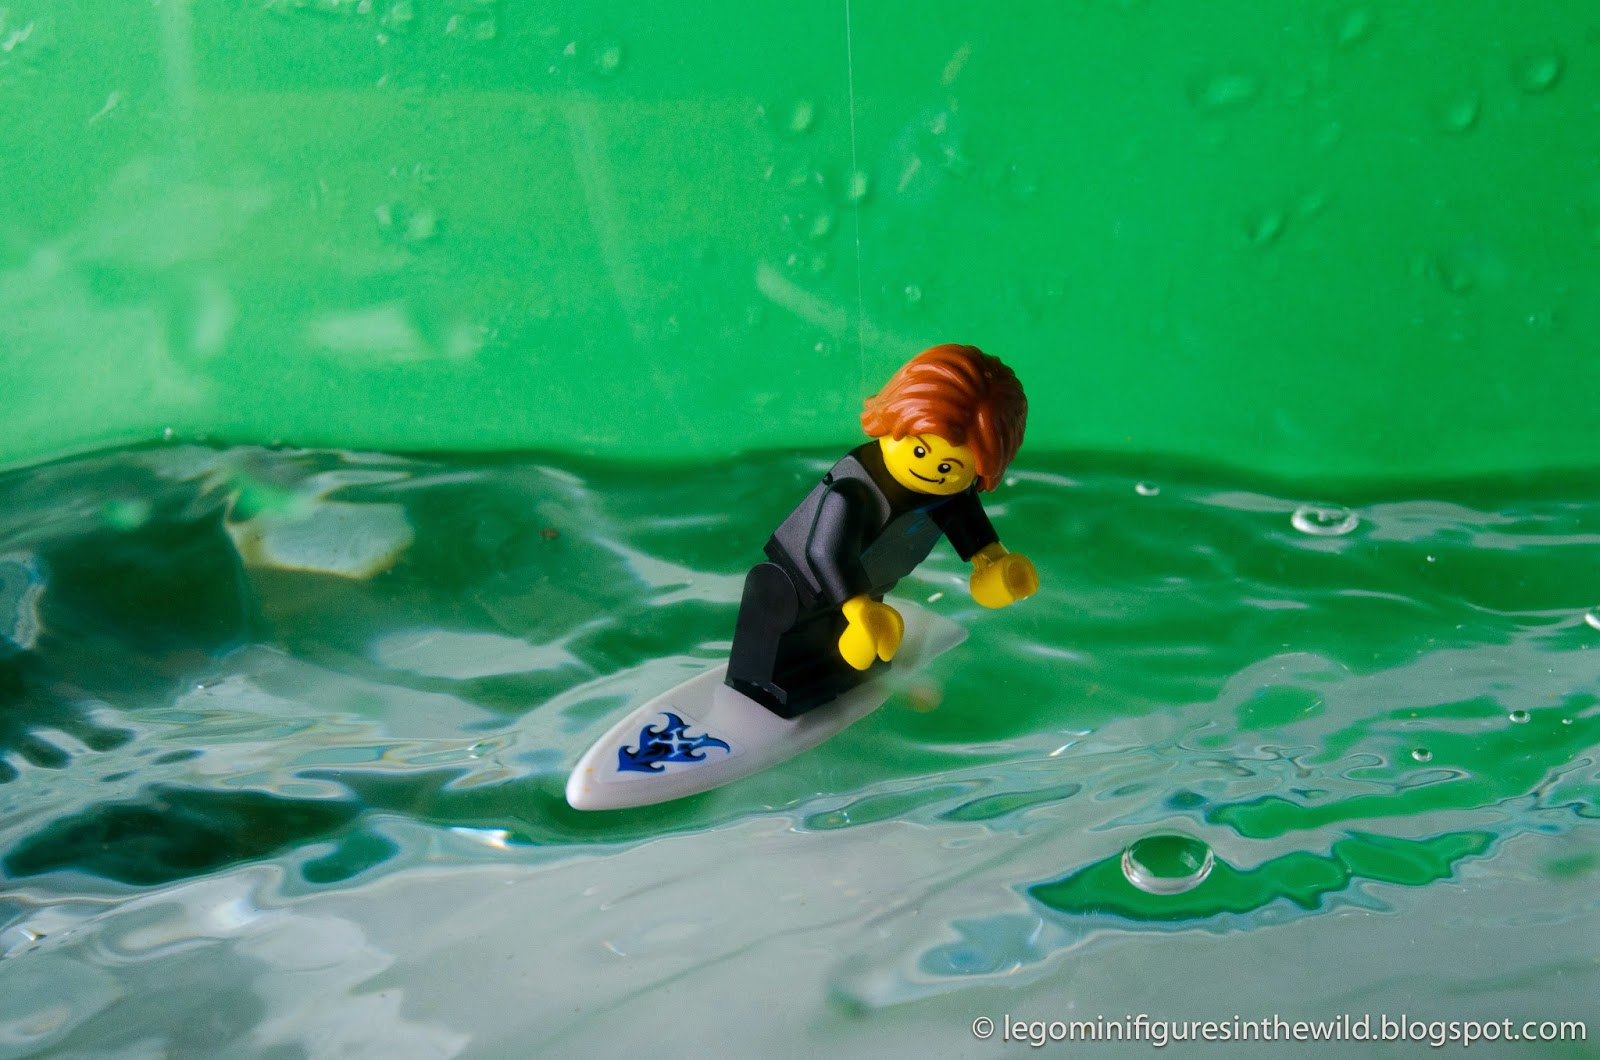 Lego Minifigure City Surfer - Wallpaper